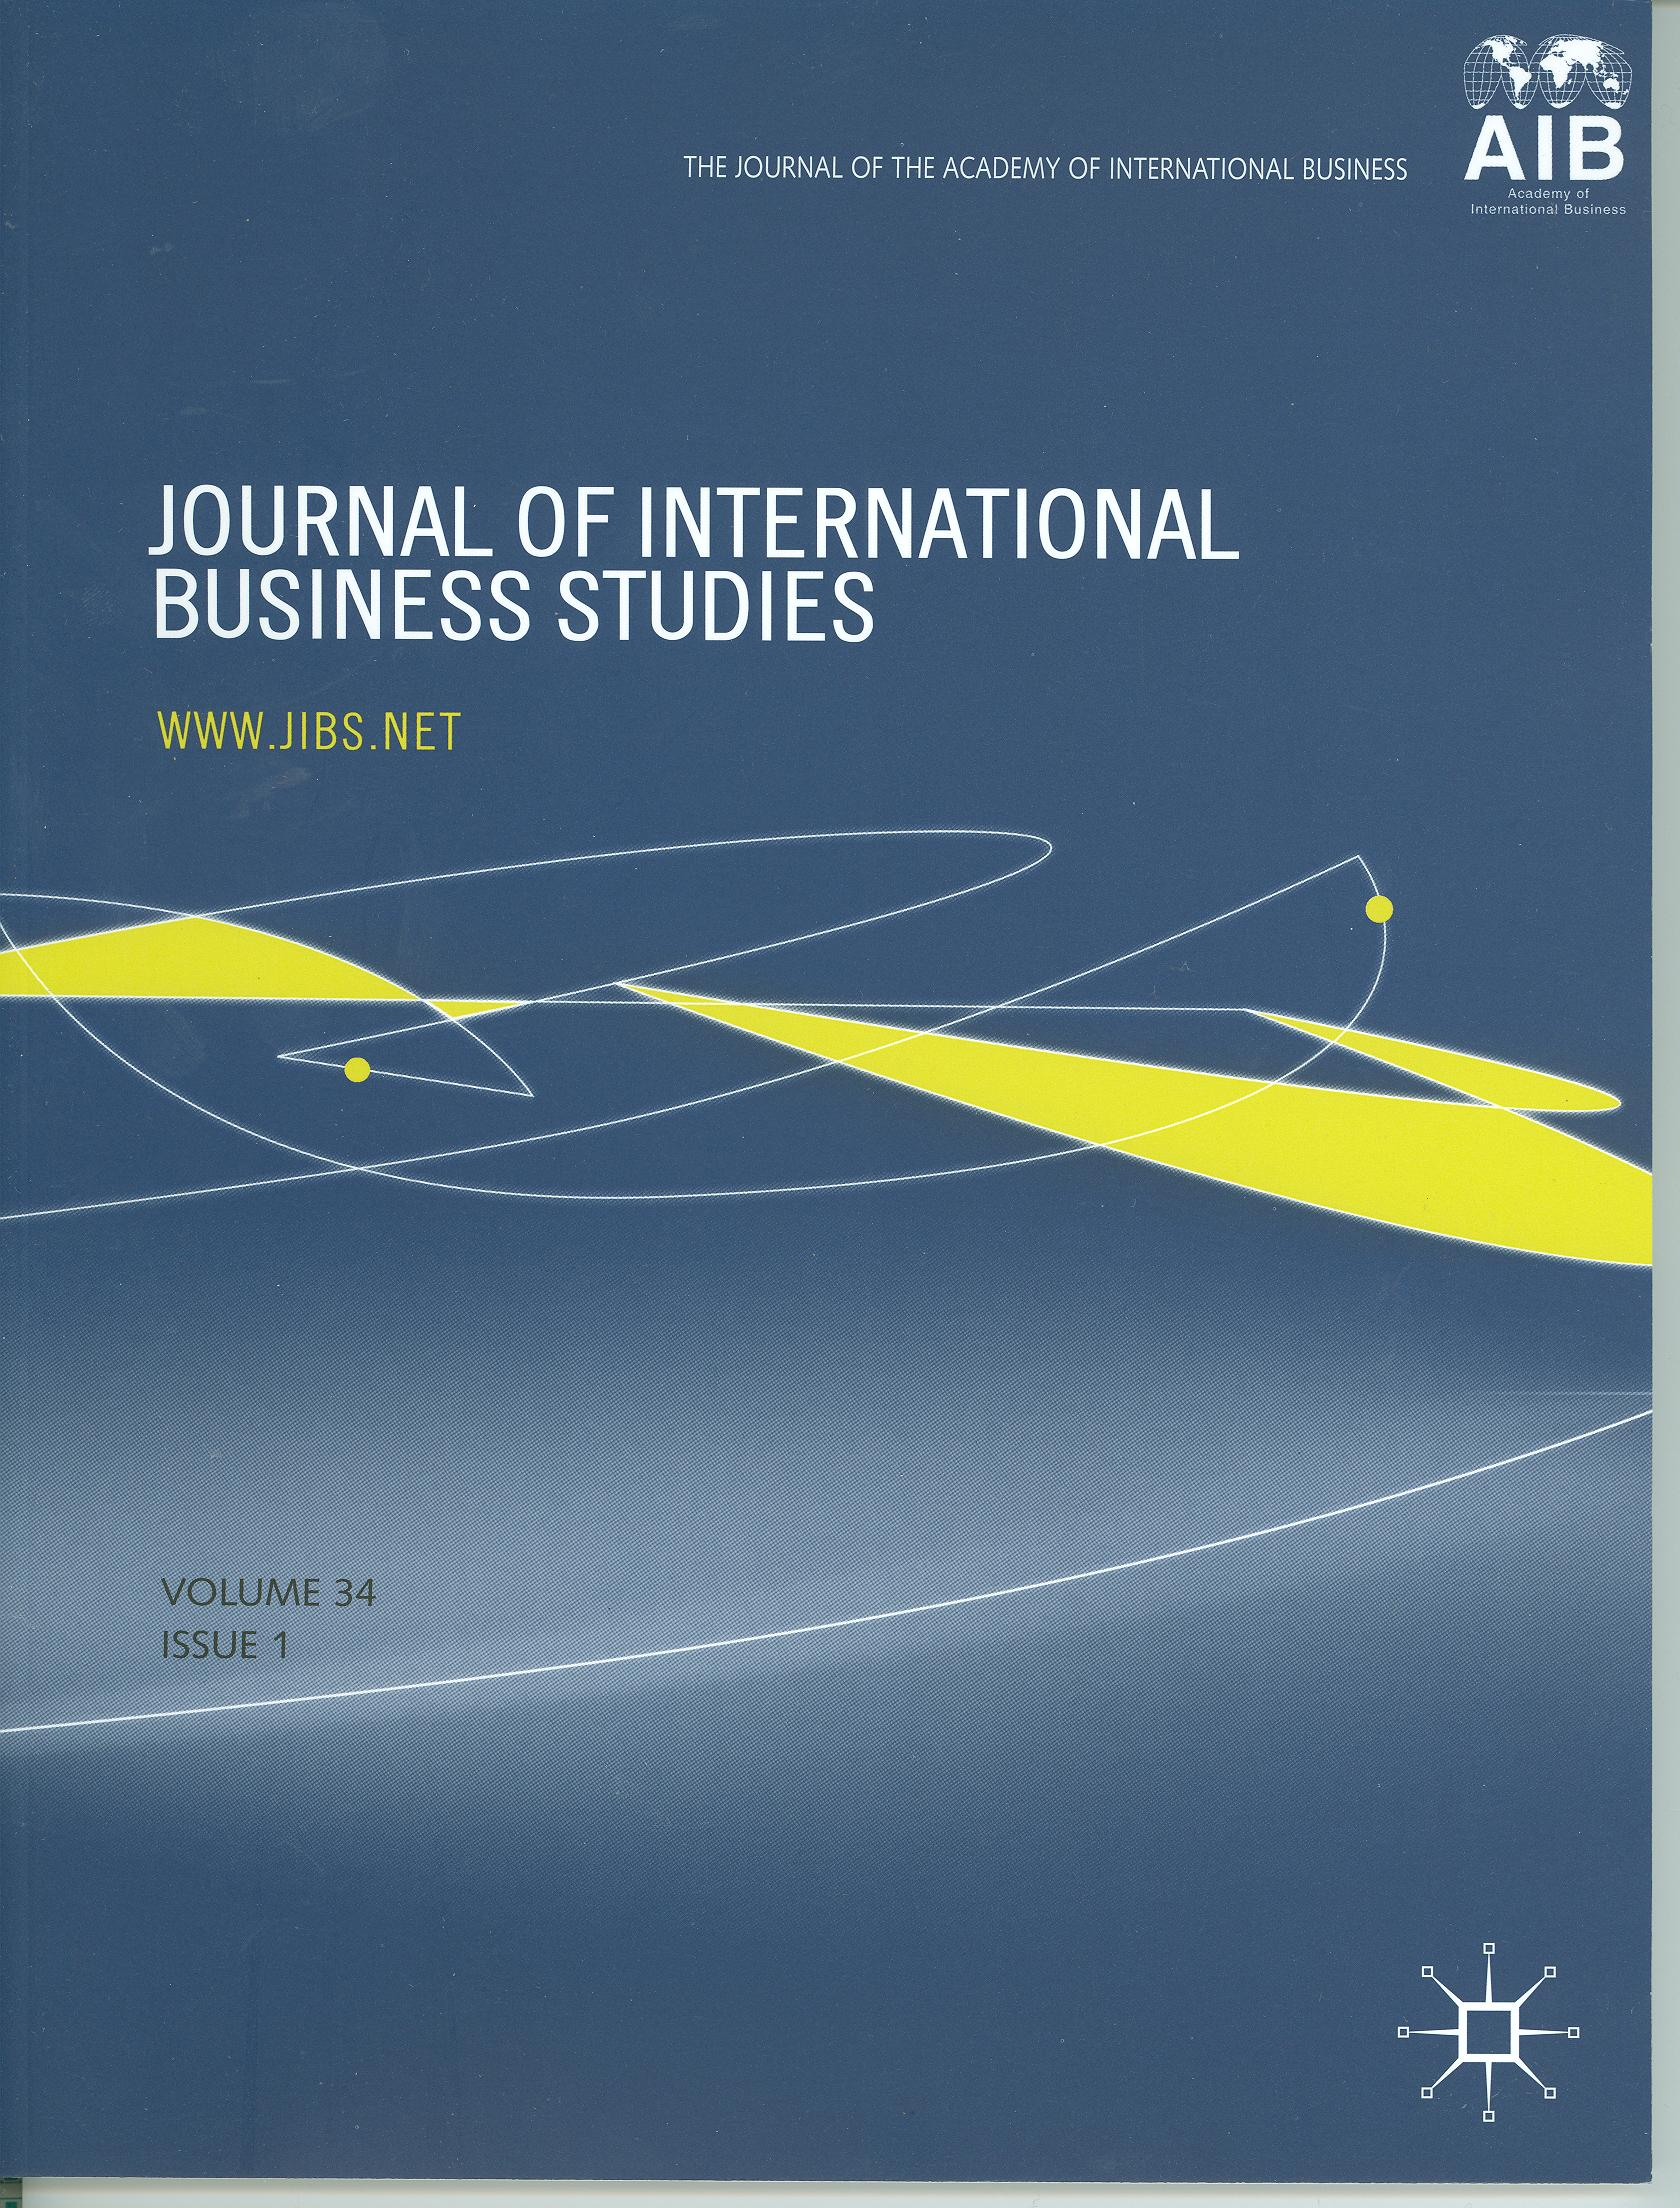 Cover design from a 2003 issue of JIBS